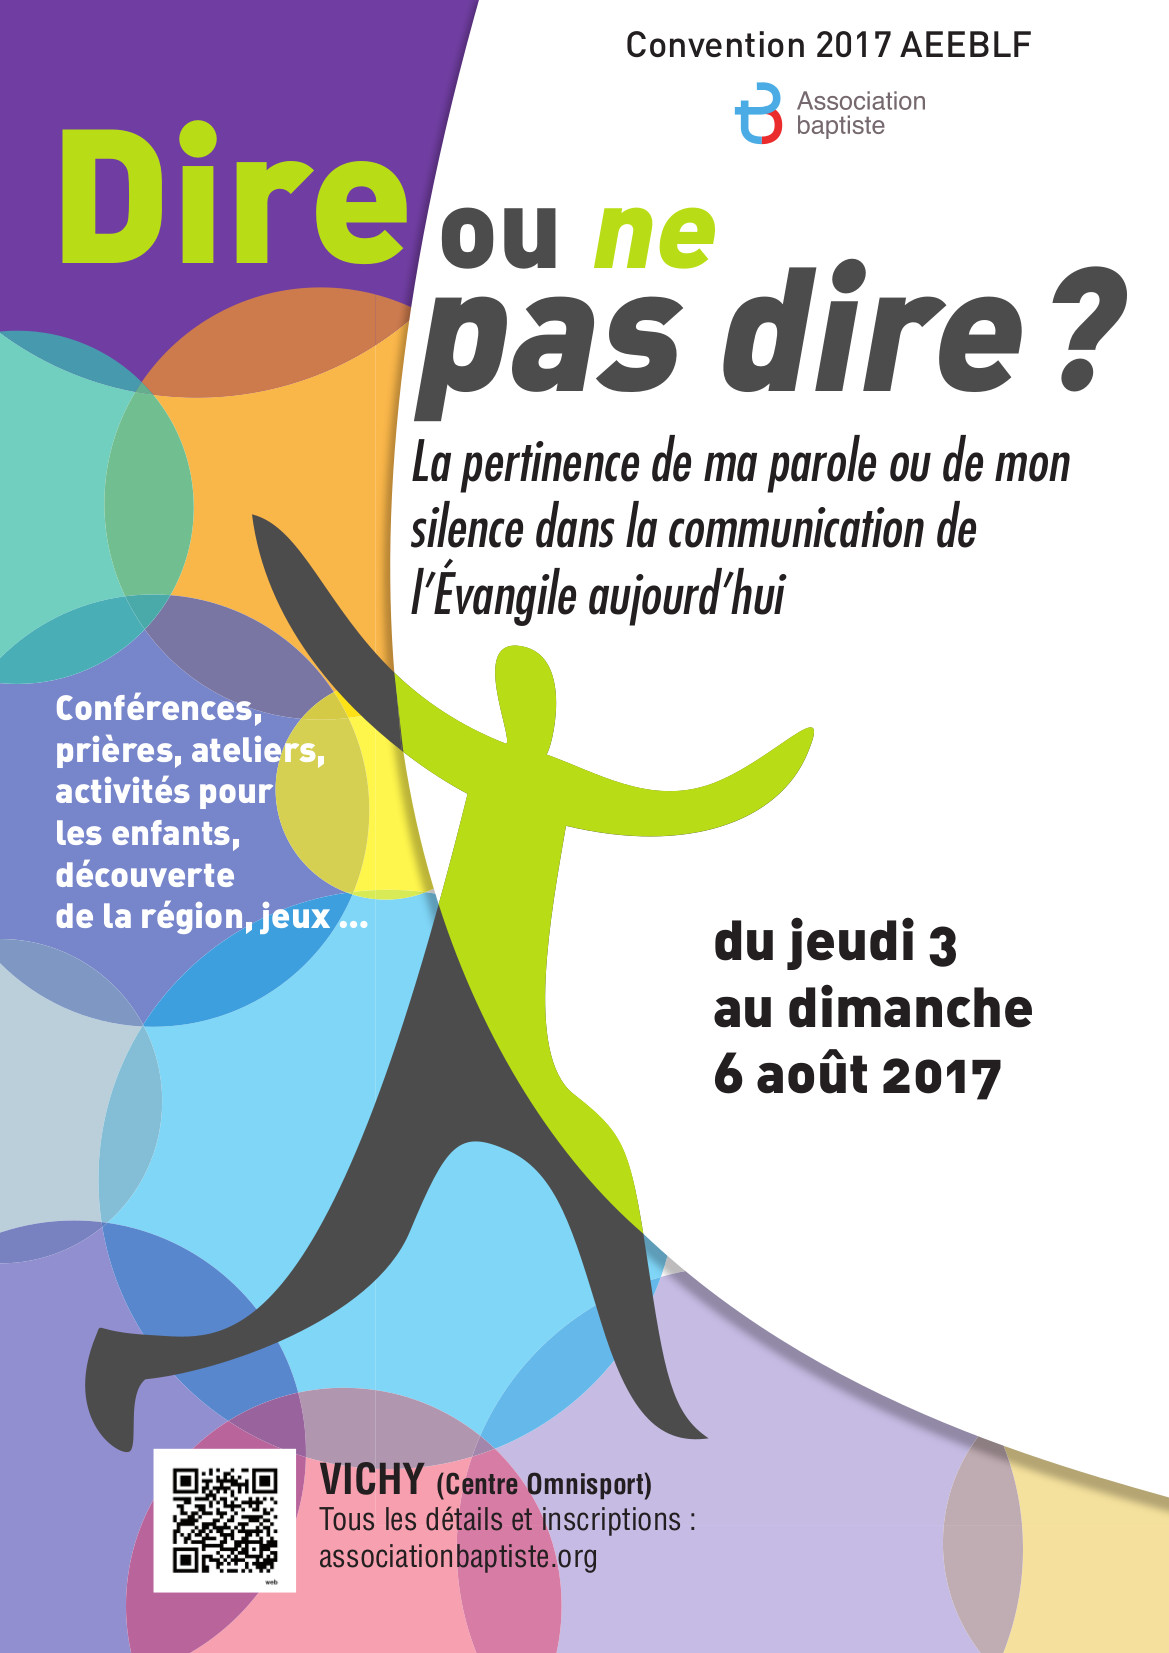 affiche Convention2017 nuage.aeeblf